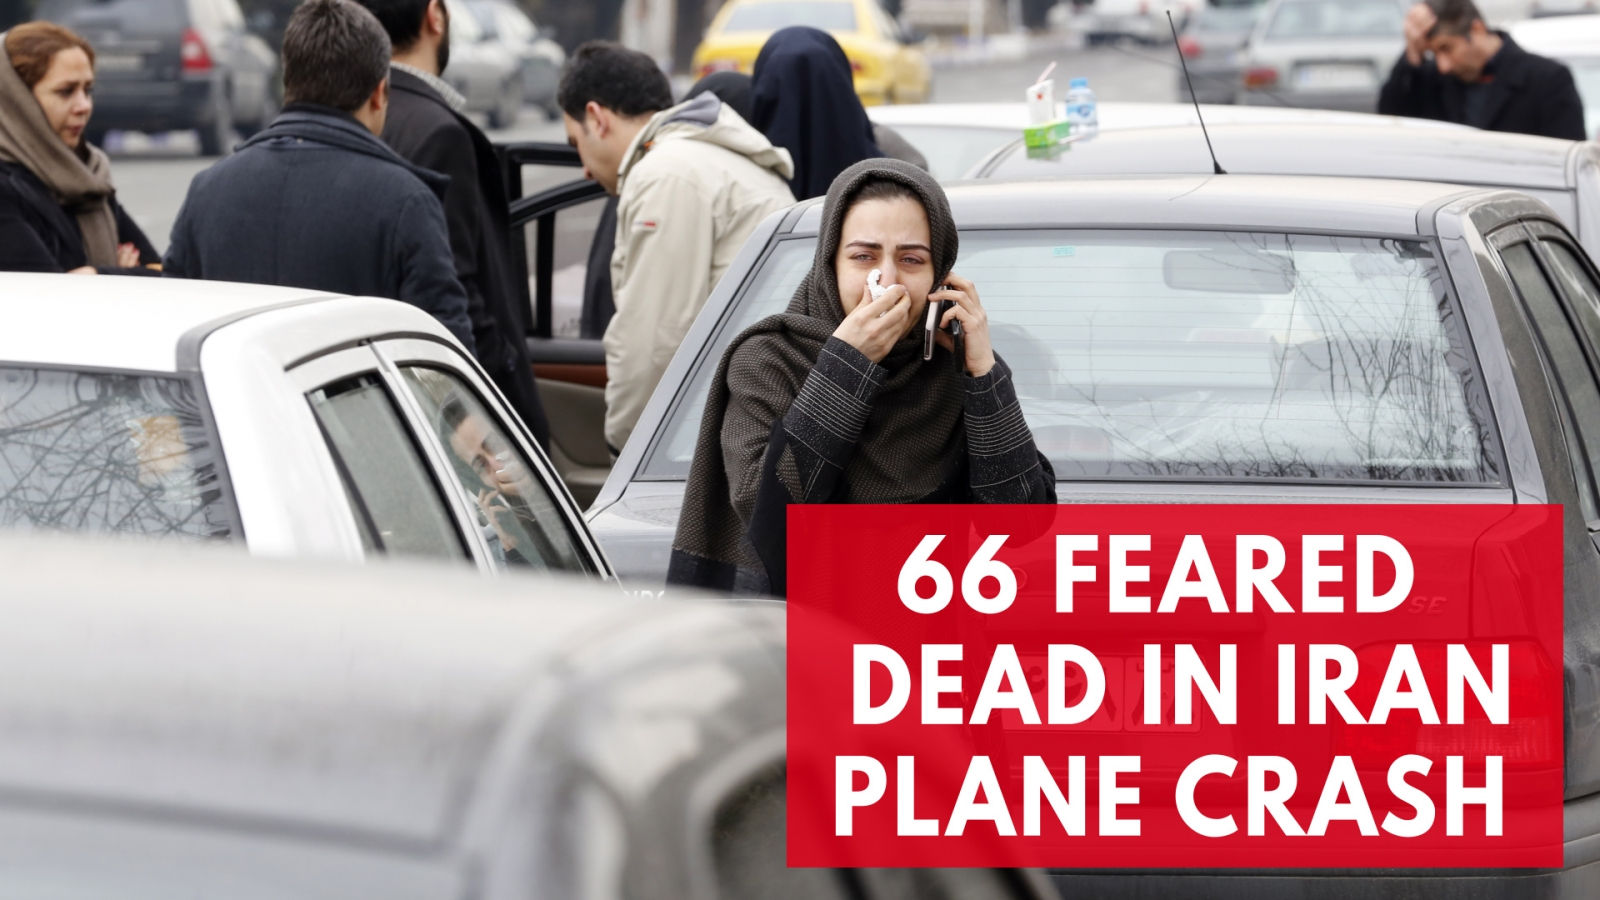 66 people feared dead after plane crashes in the mountains of Iran